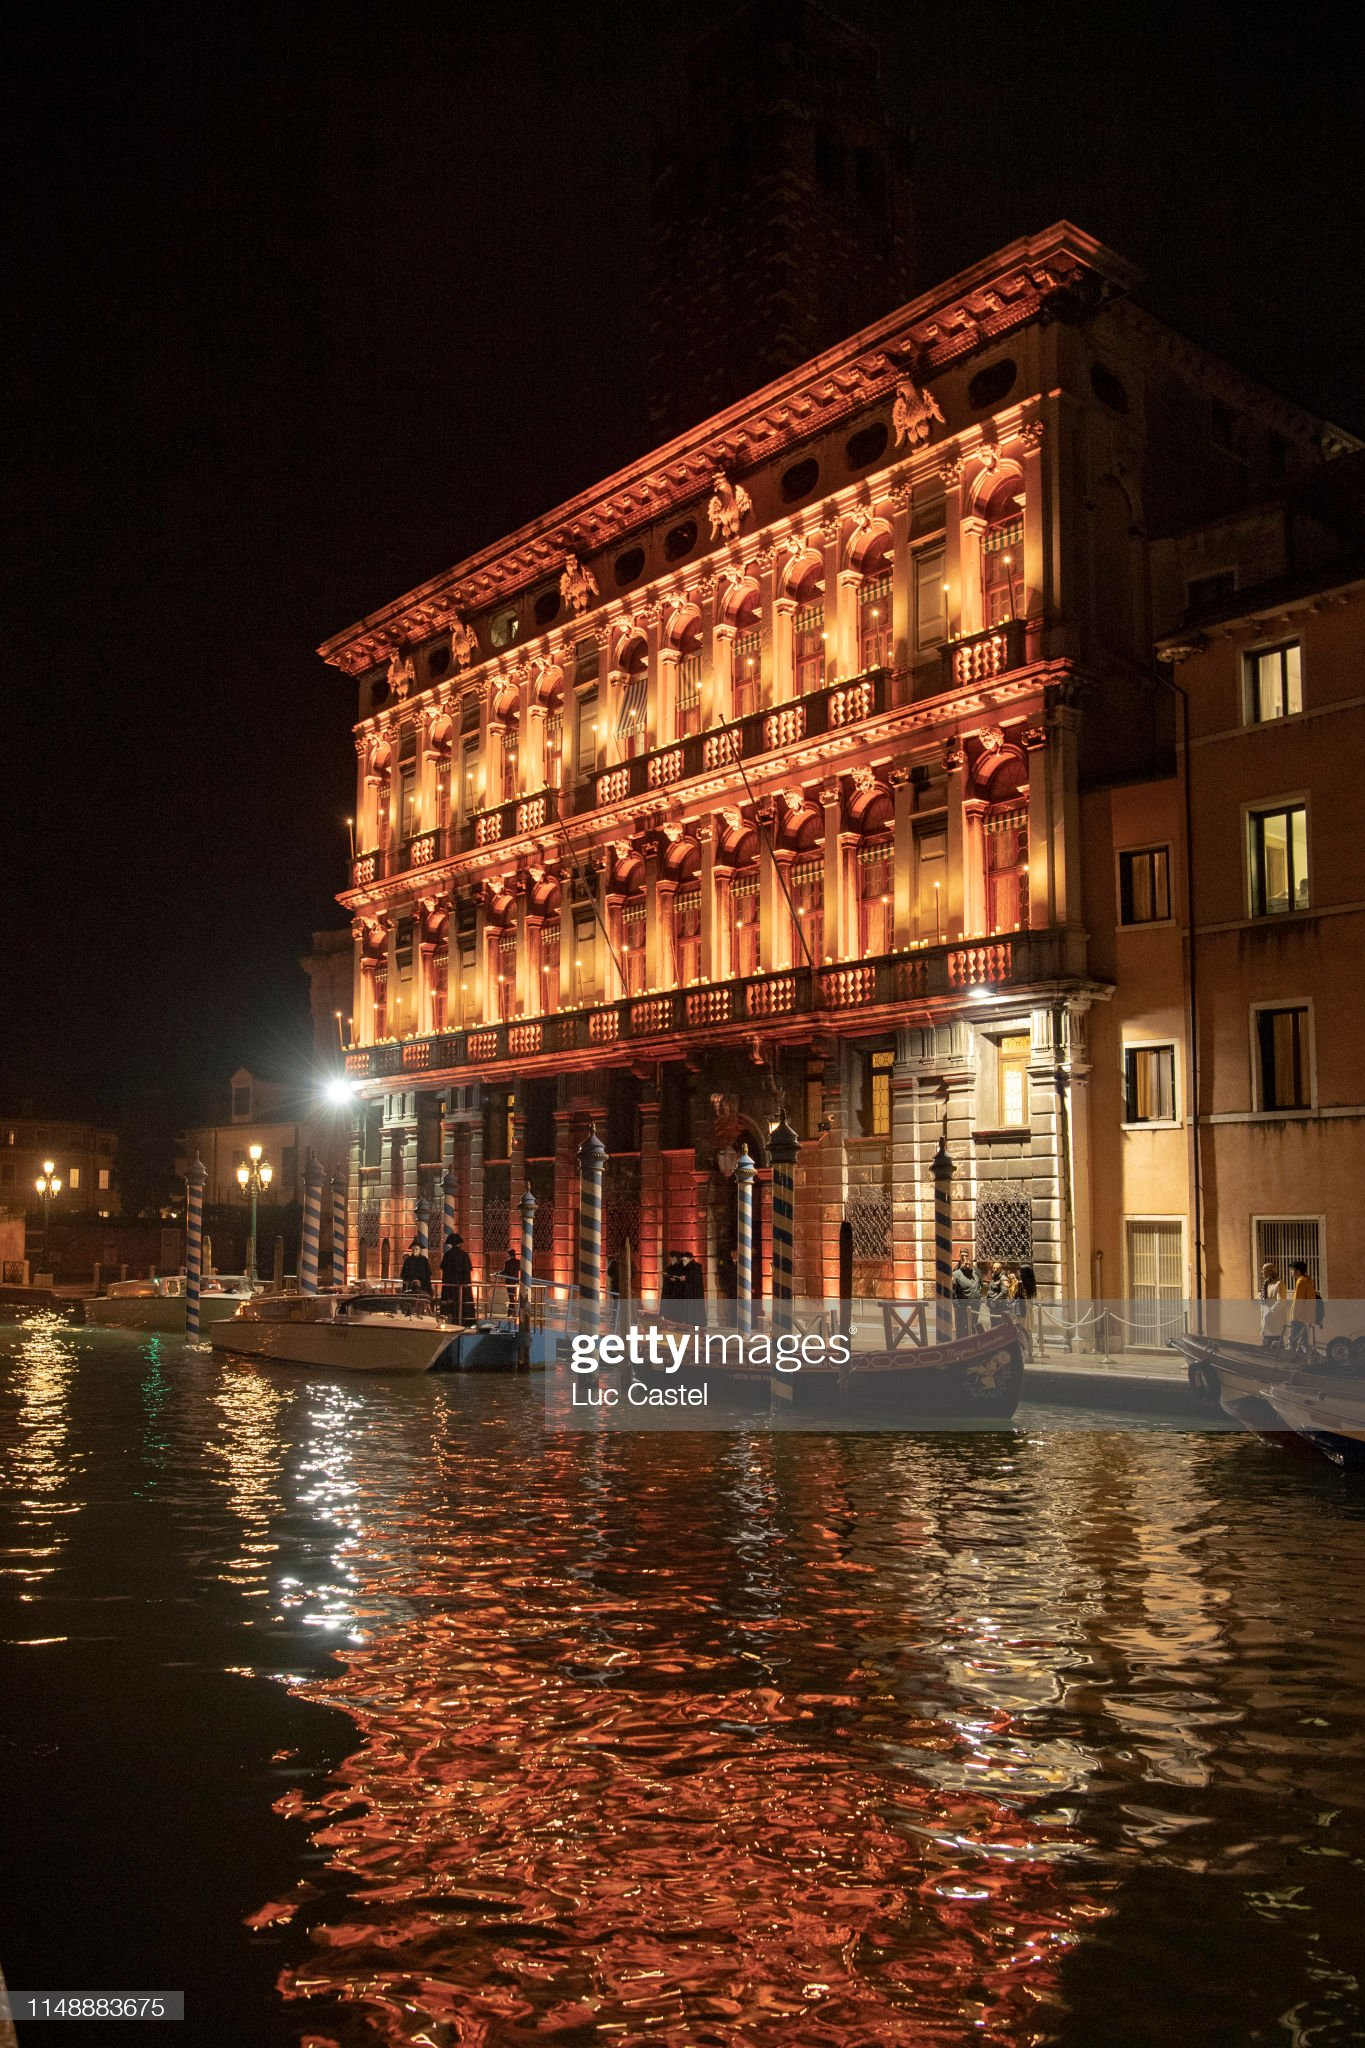 https://media.gettyimages.com/photos/illustration-view-of-the-tiepolo-ball-dior-in-venice-dinner-gala-at-picture-id1148883675?s=2048x2048